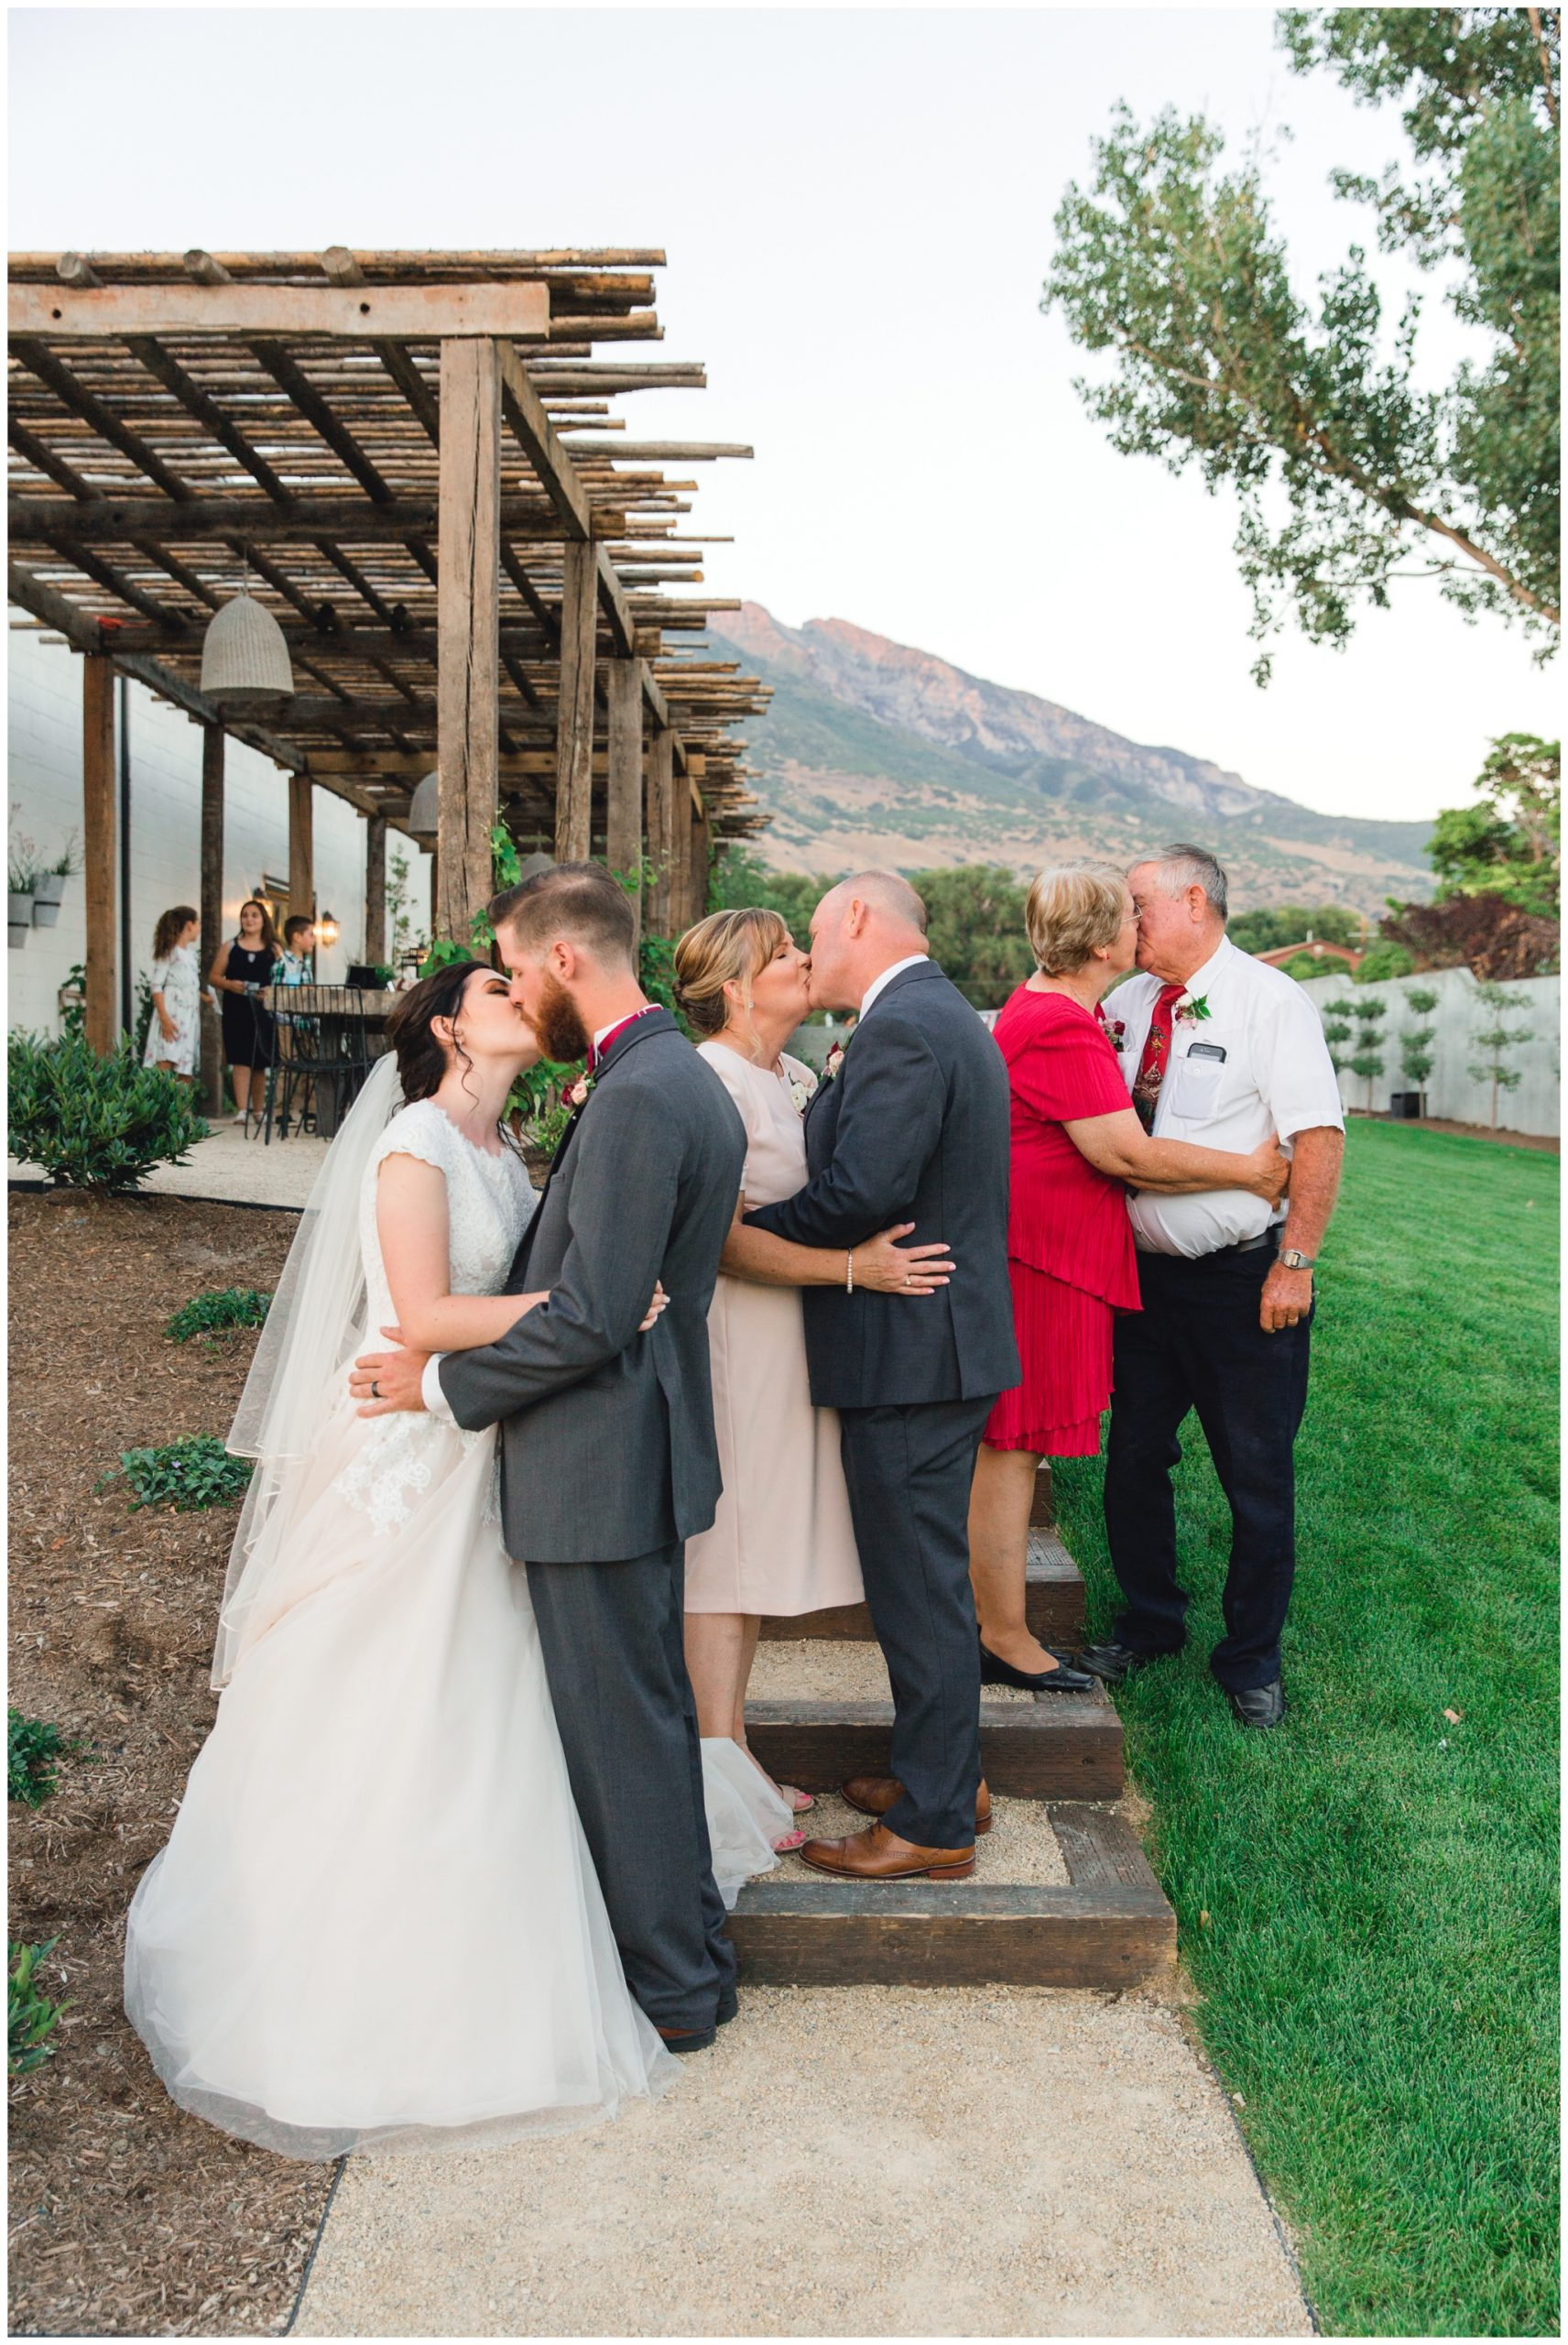 3 generations kissing their spouces. All of them share the same wedding date.